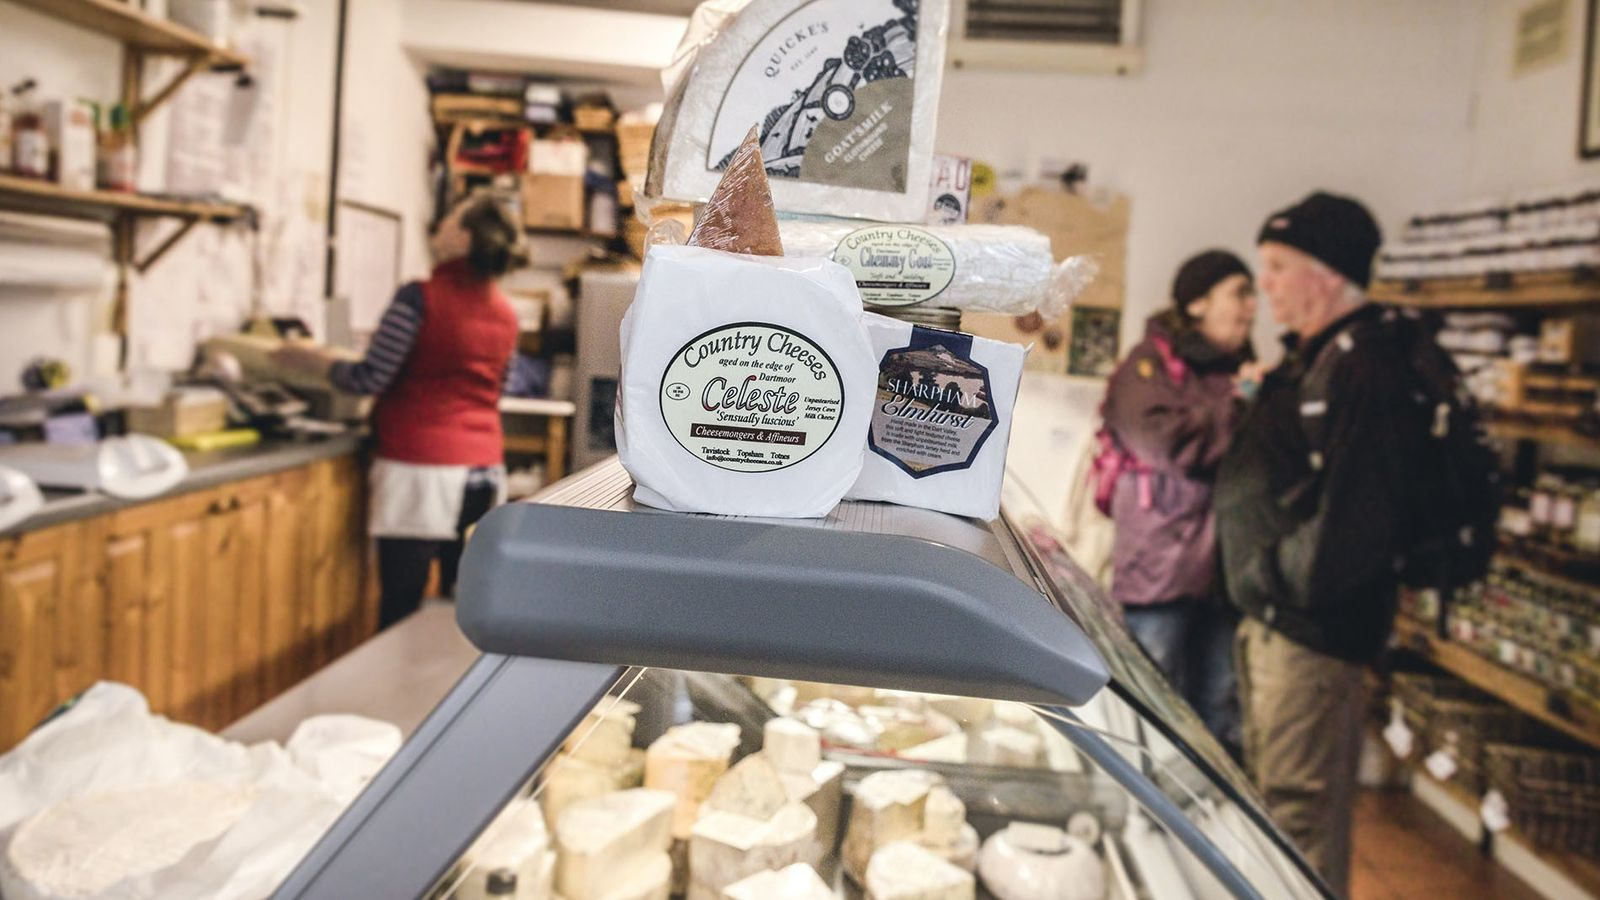 Gary and Elise Jungheim of Country Cheeses have sold British cheese in Devon for more than ...